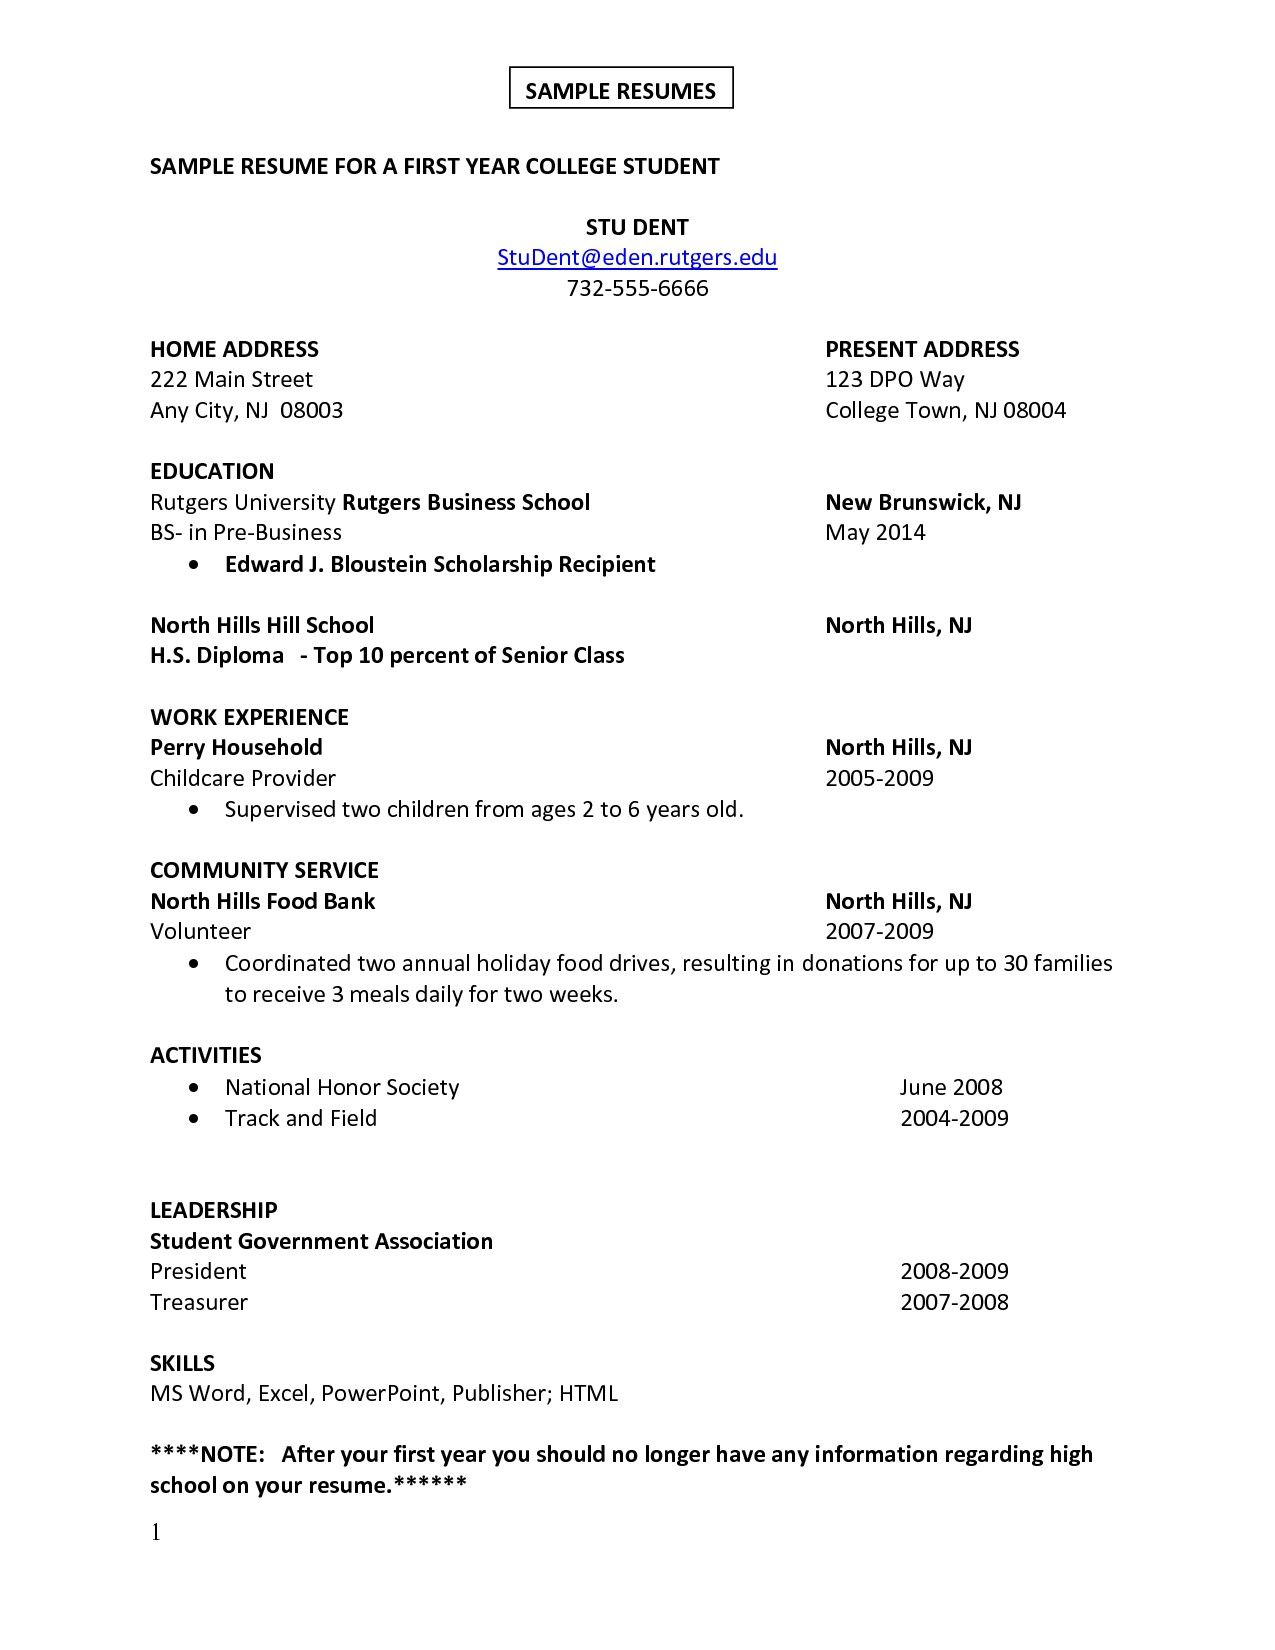 First Time Job Resume Template Example Of Job Resume. A Good Resume Example  Resume Cover Letter .  How To Make A Good Resume For A Job